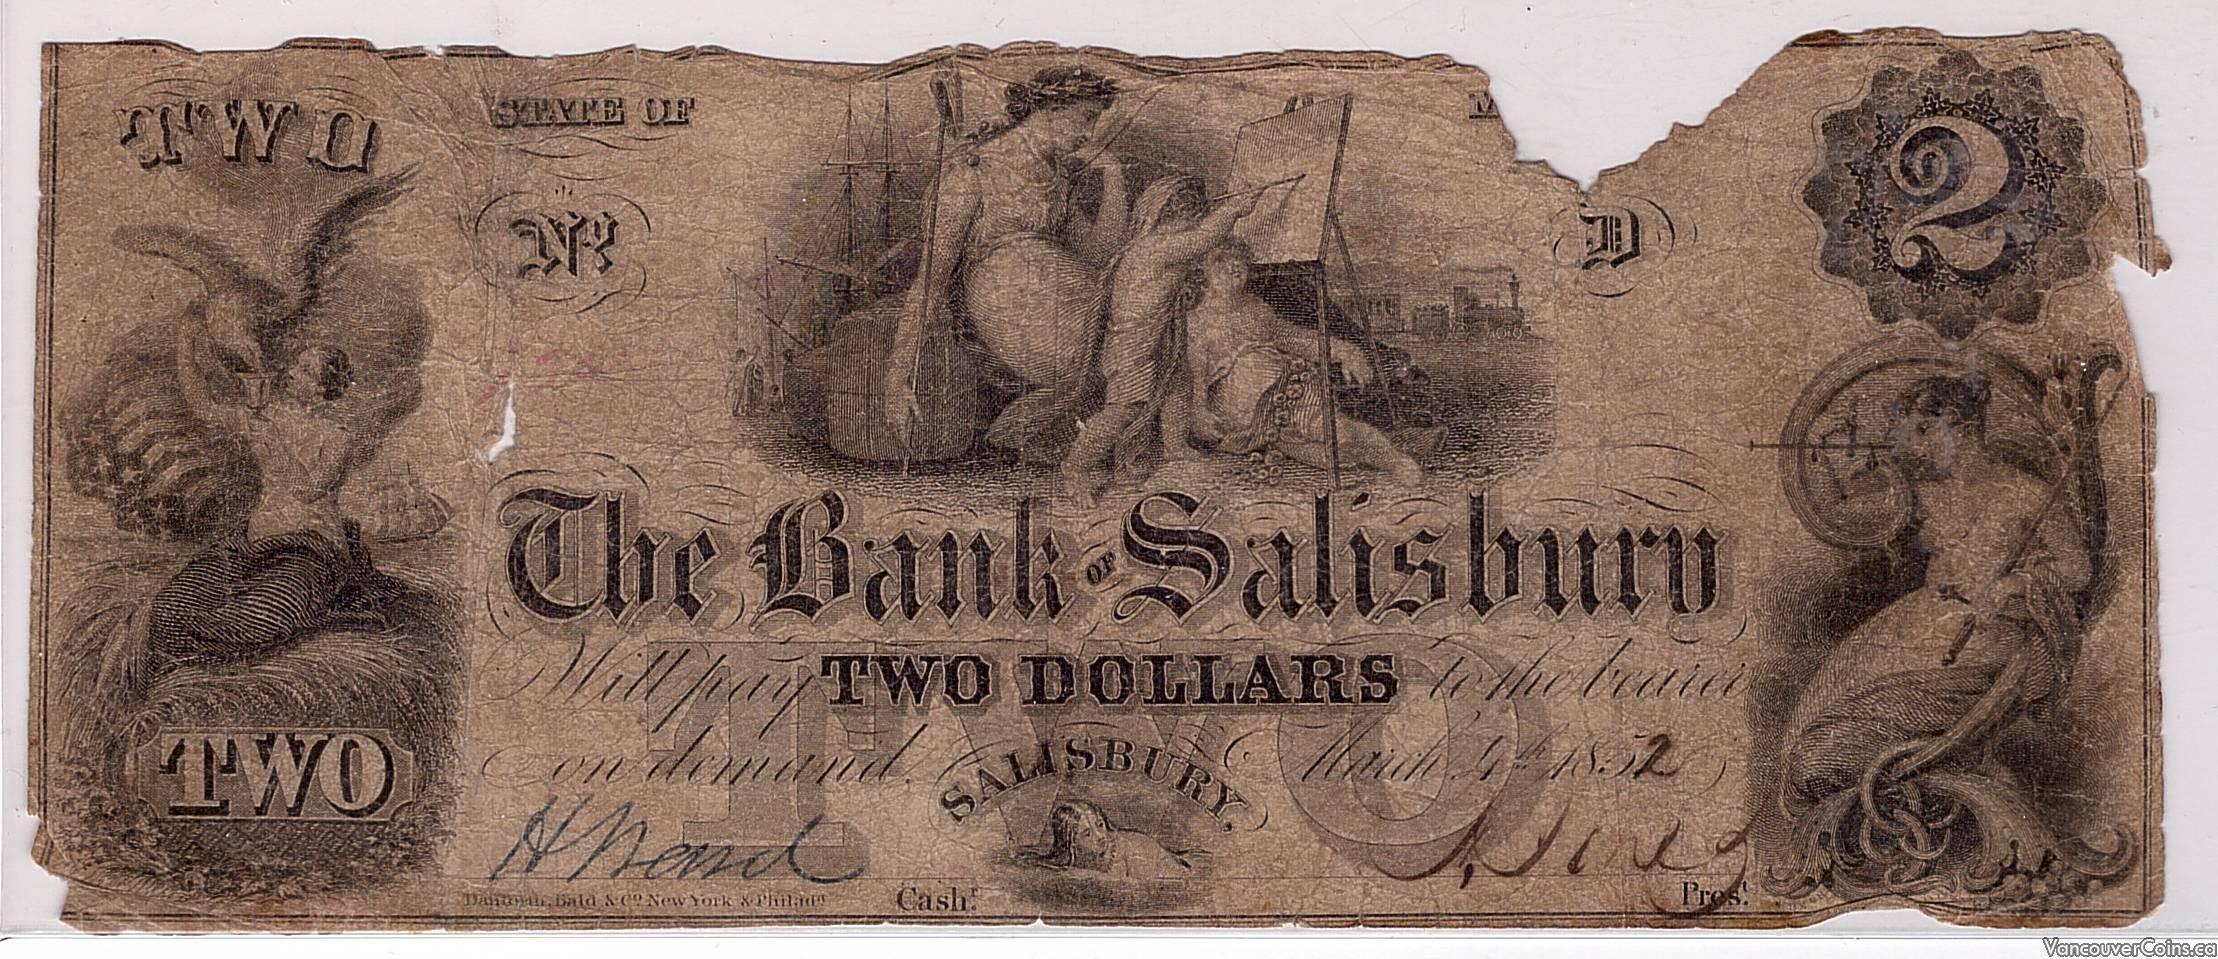 USA $2.00 The Bank of Salisbury March 4th 1852